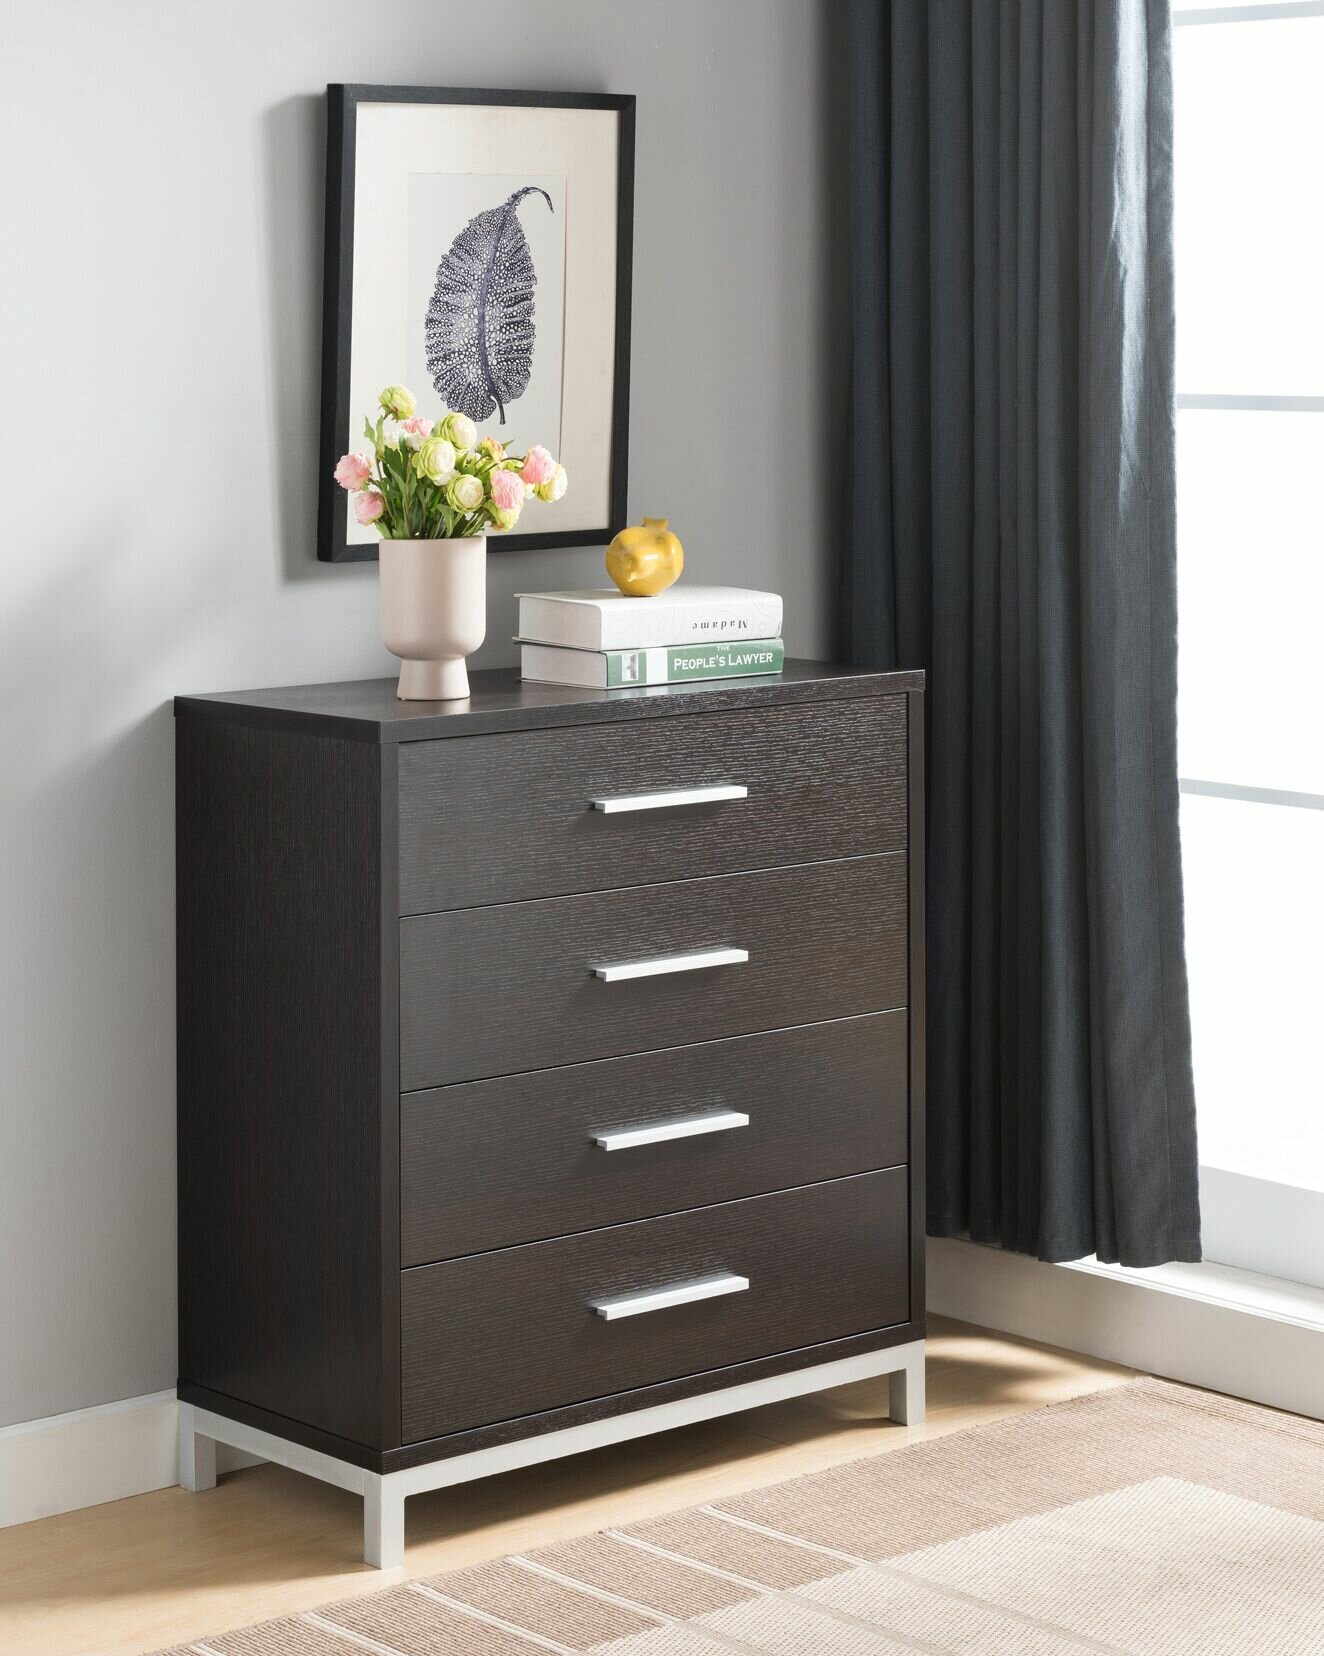 """Epple Creative Modern Contemporary Style 10"""" l X 10"""" w X 10"""" h Office Home  Bedroom Wooden Utility Storage Cabinet Dresser Chest 10 Drawers Red Cocoa"""